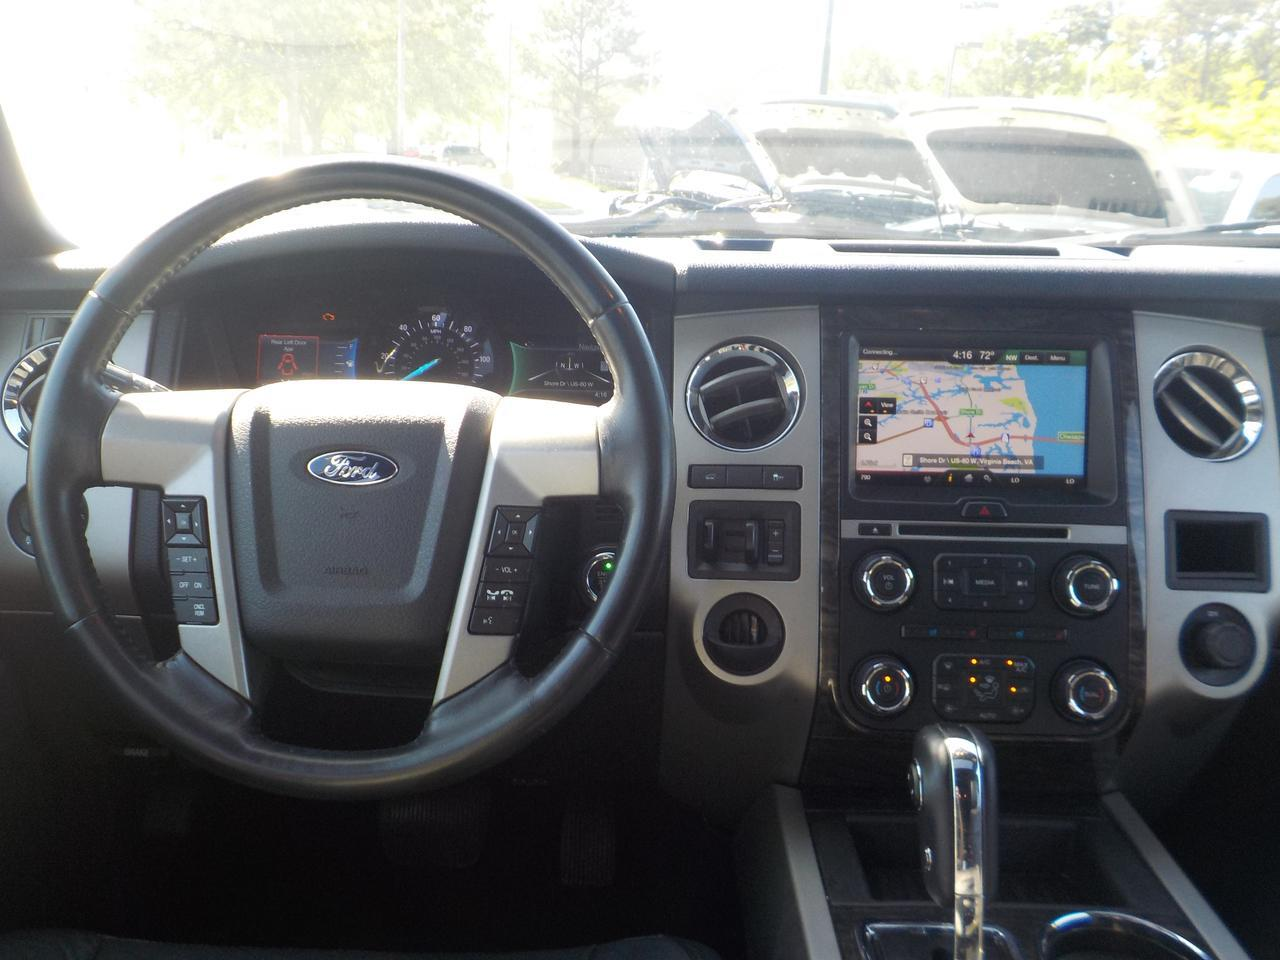 2015 FORD EXPEDITION LIMITED RWD, POWER RUNNING BOARDS, REMOTE START, SUNROOF, POWER 3RD ROW, 2ND ROW CAPTAIN CHAIRS, TOW Virginia Beach VA